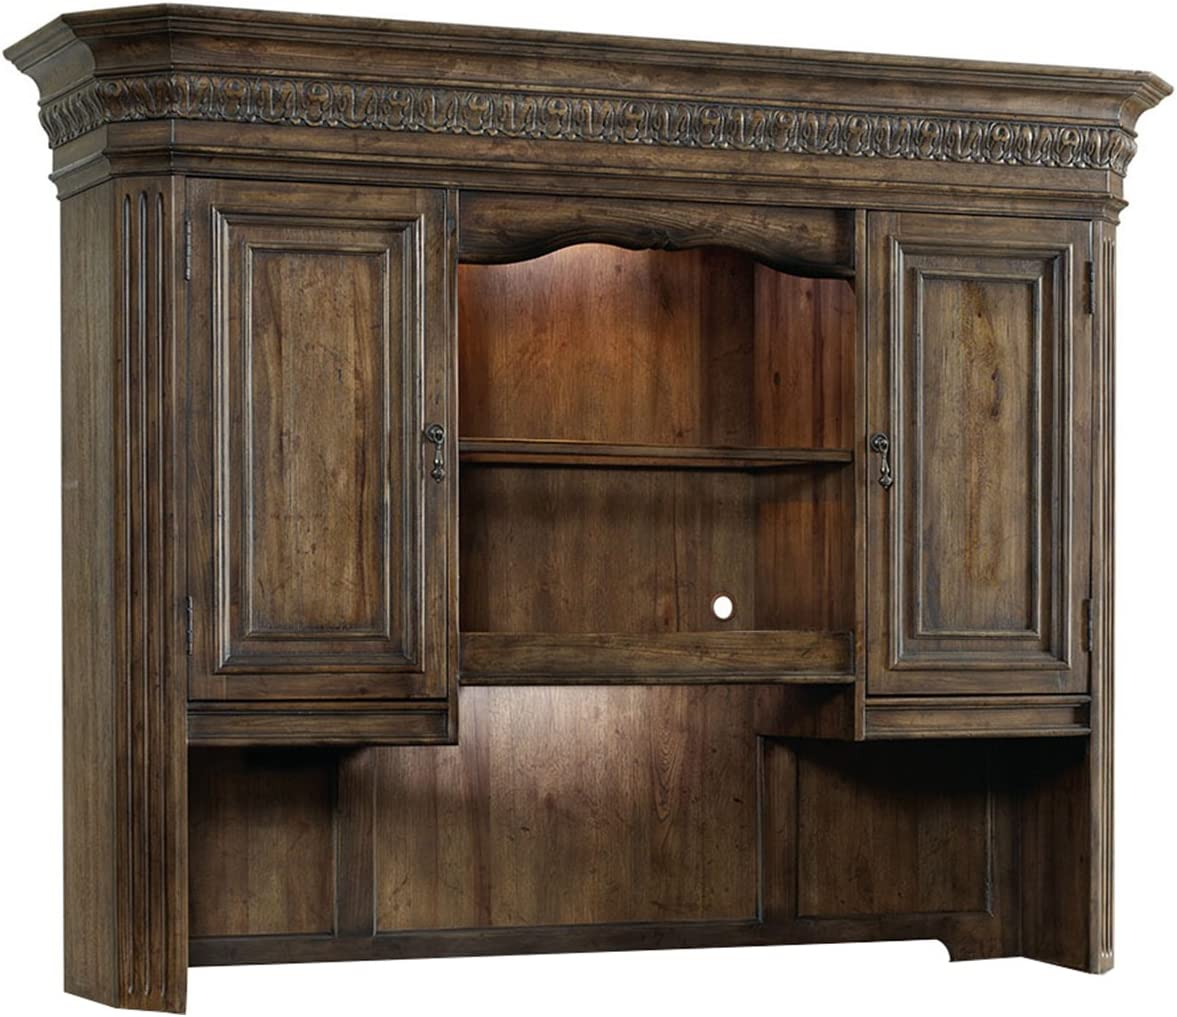 Hooker Furniture Rhapsody National products Hutch Computer Credenza Overseas parallel import regular item